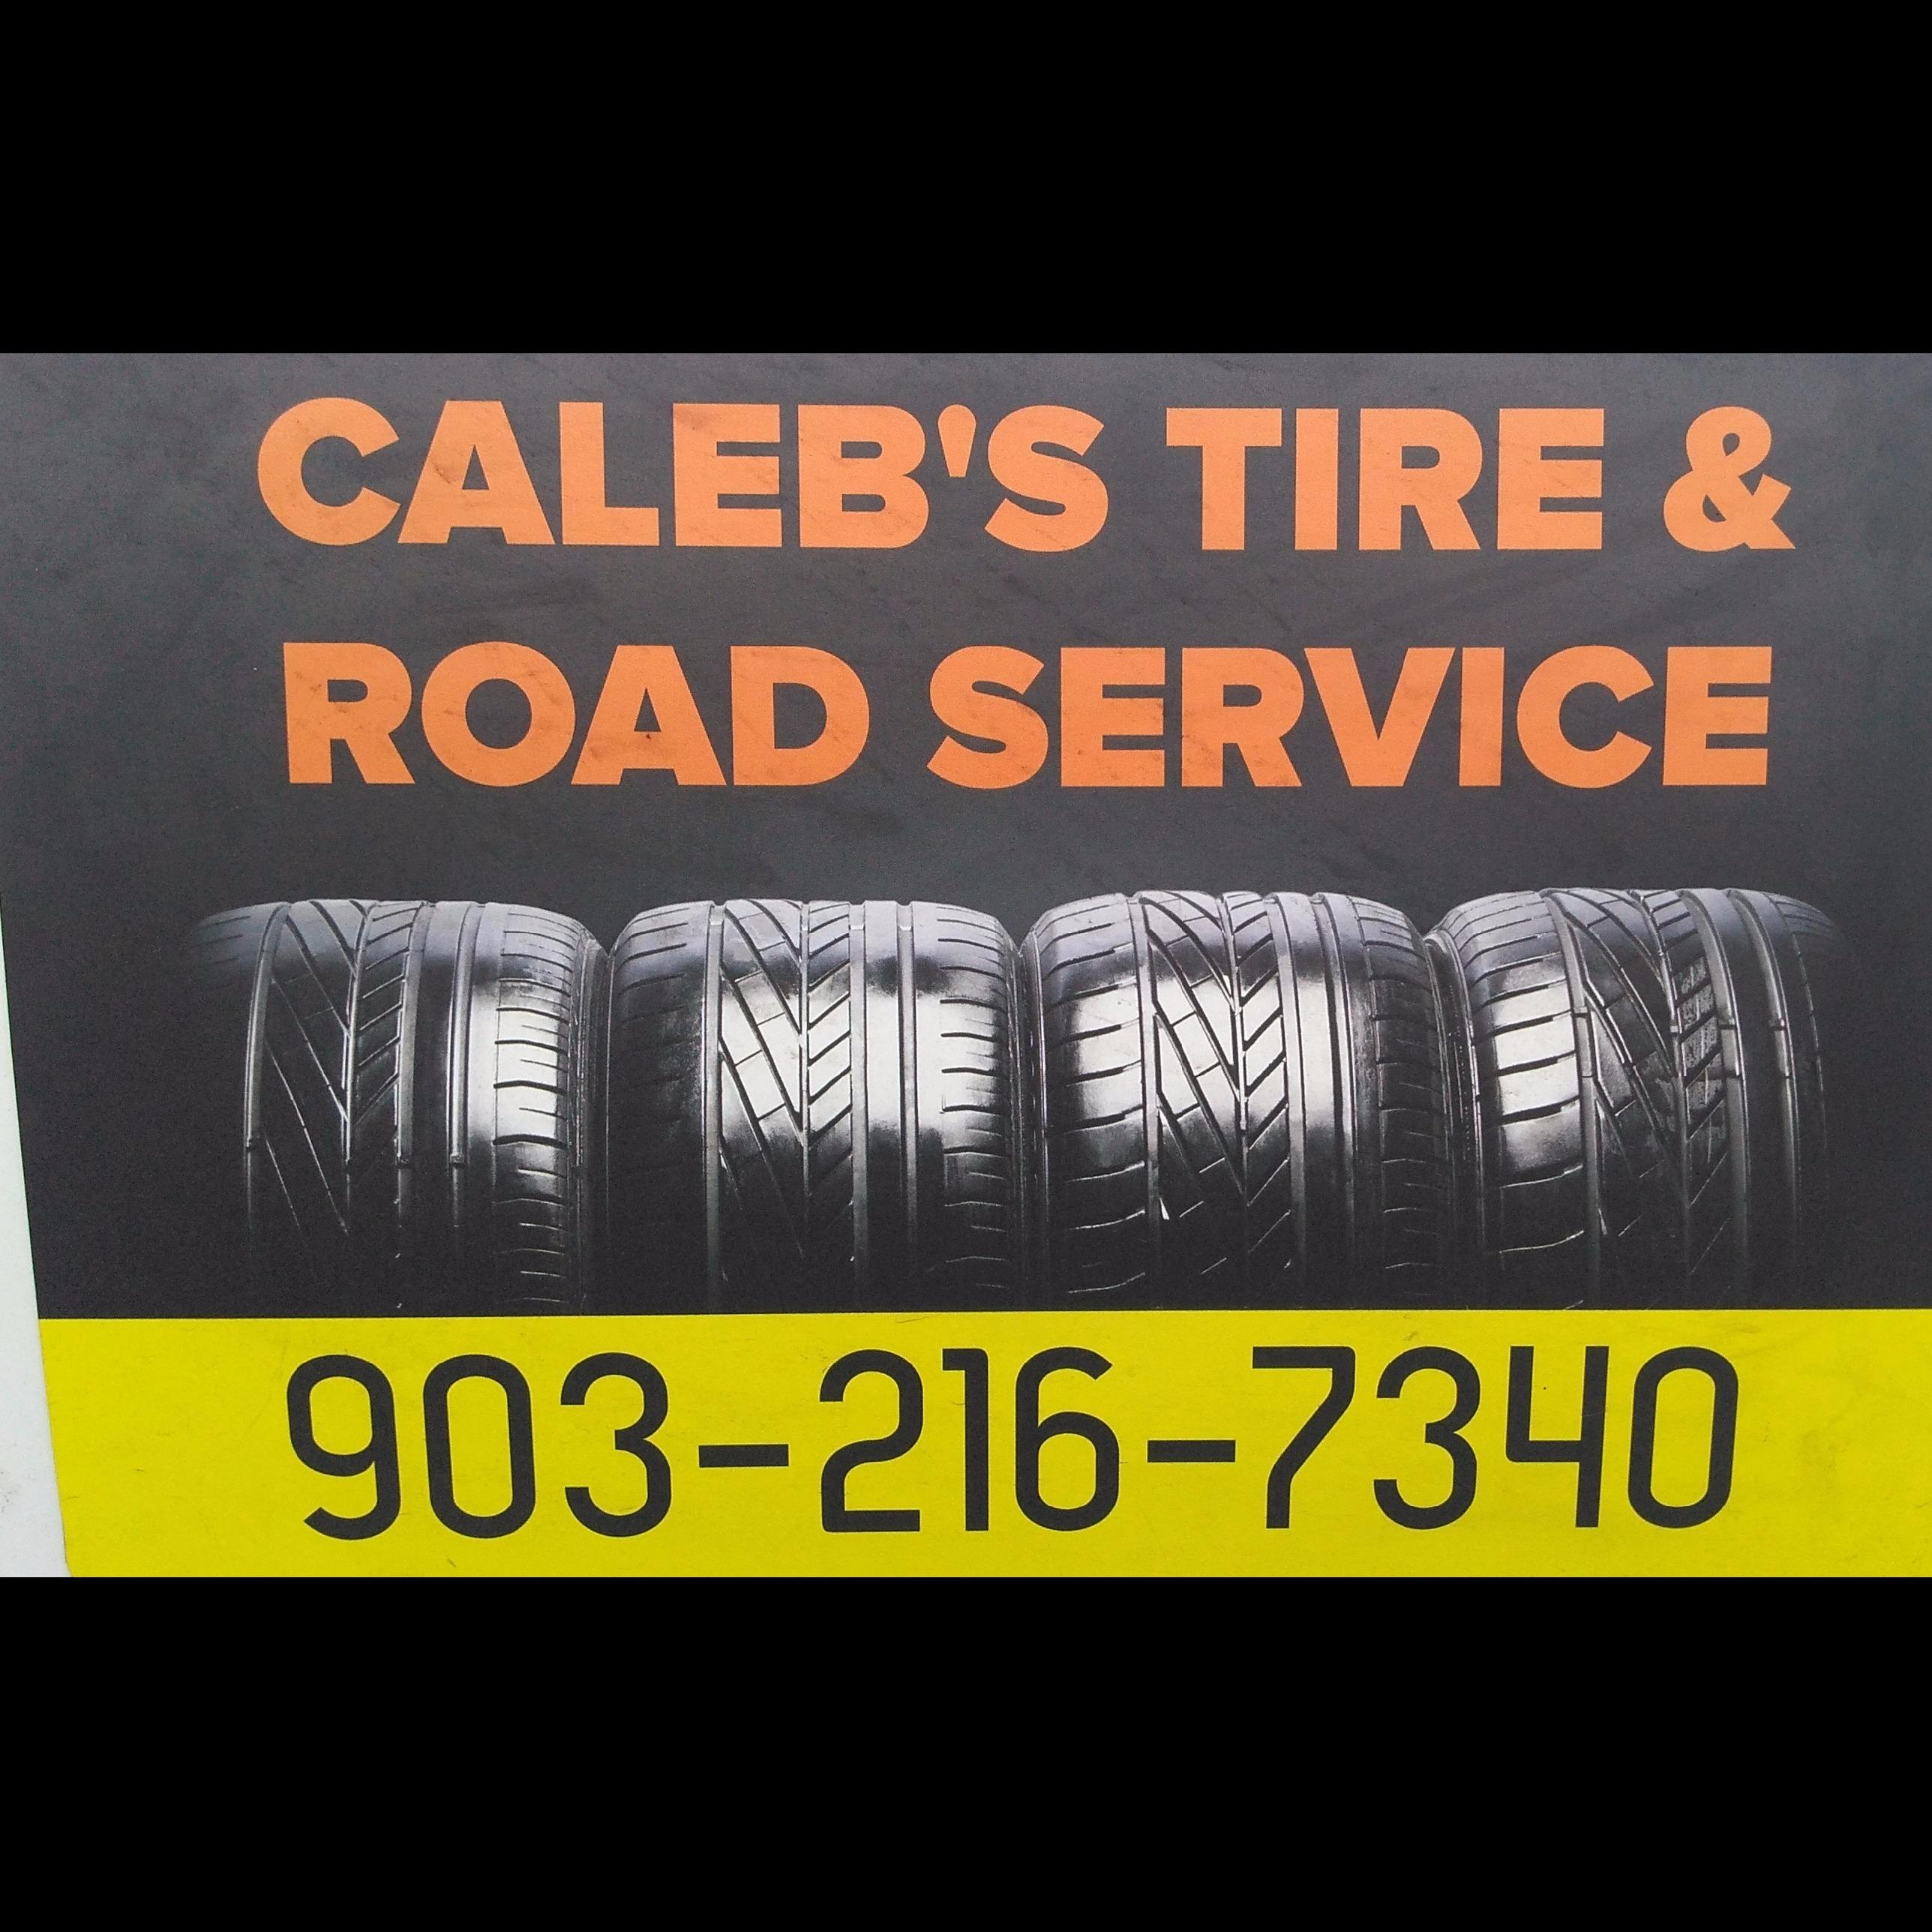 Caleb's Tire & Road Service